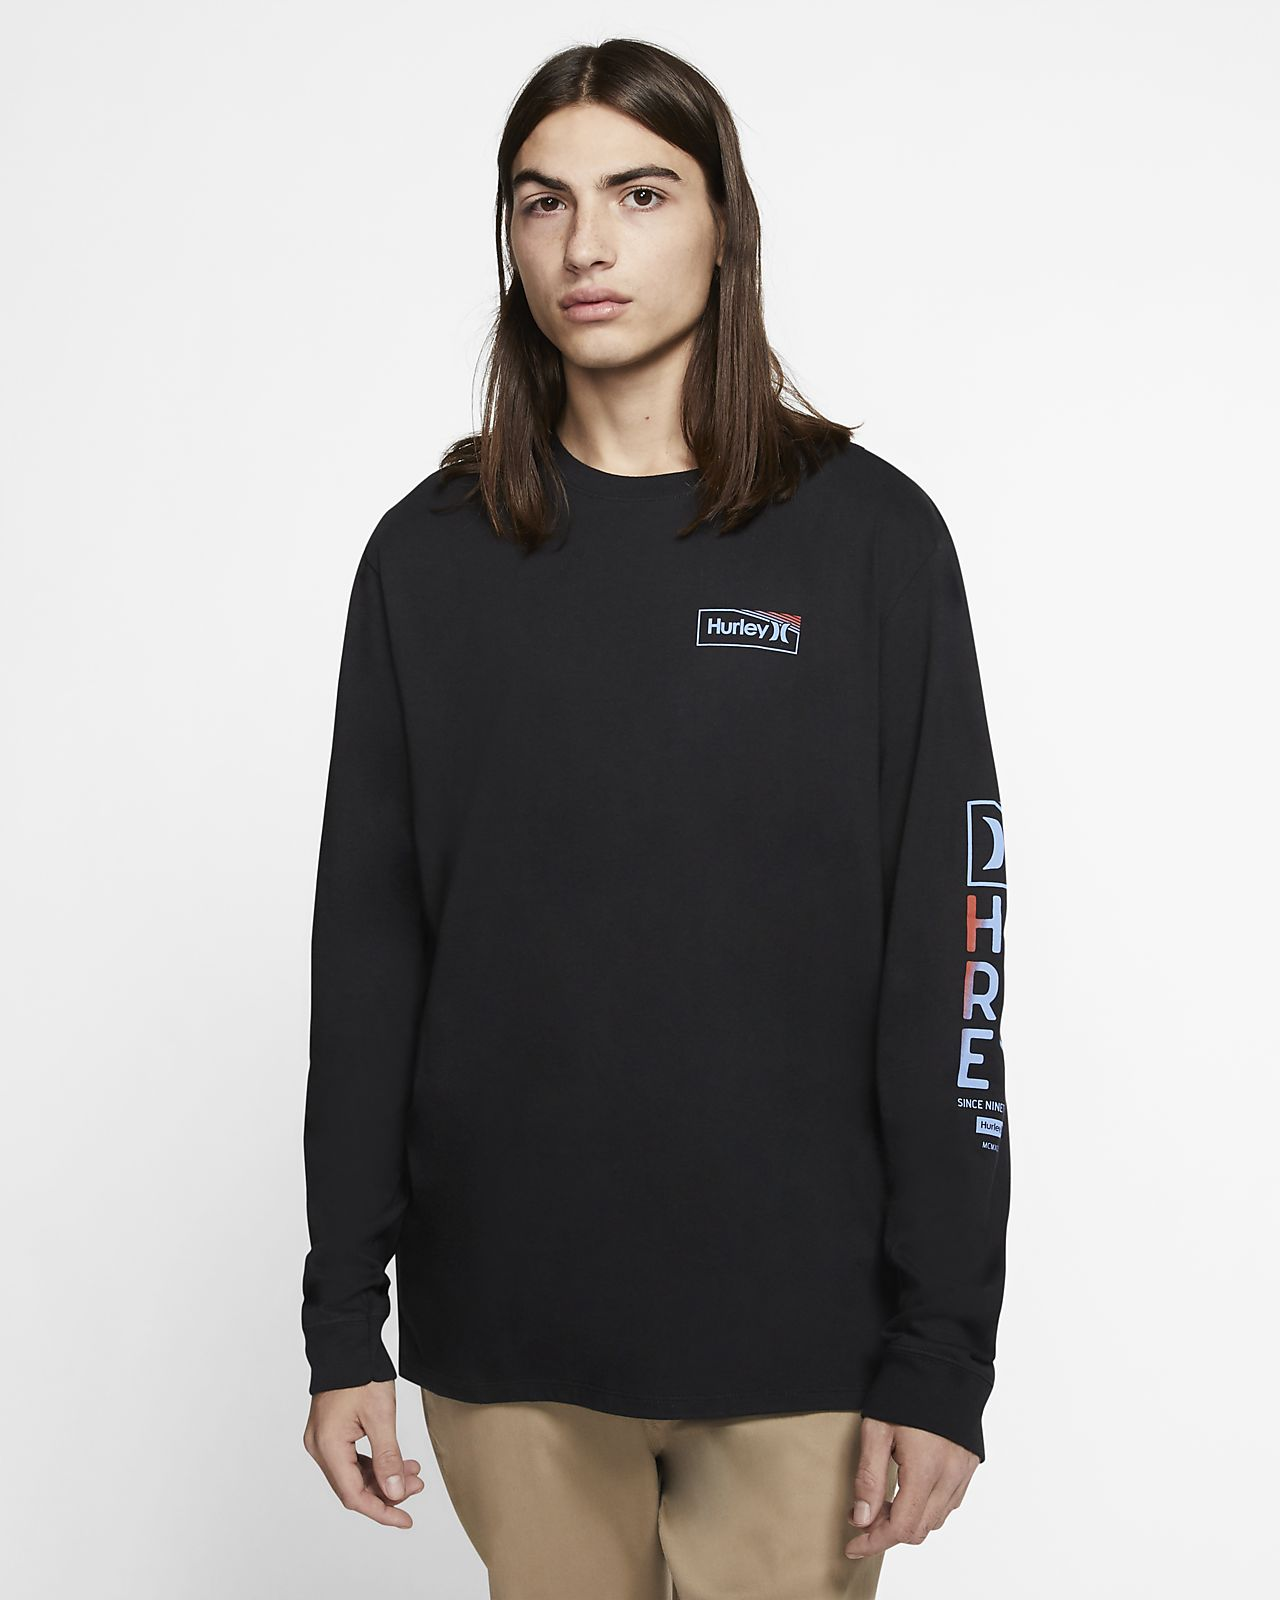 Hurley Premium One And Only Box Gradiate Men's Long Sleeve T-Shirt